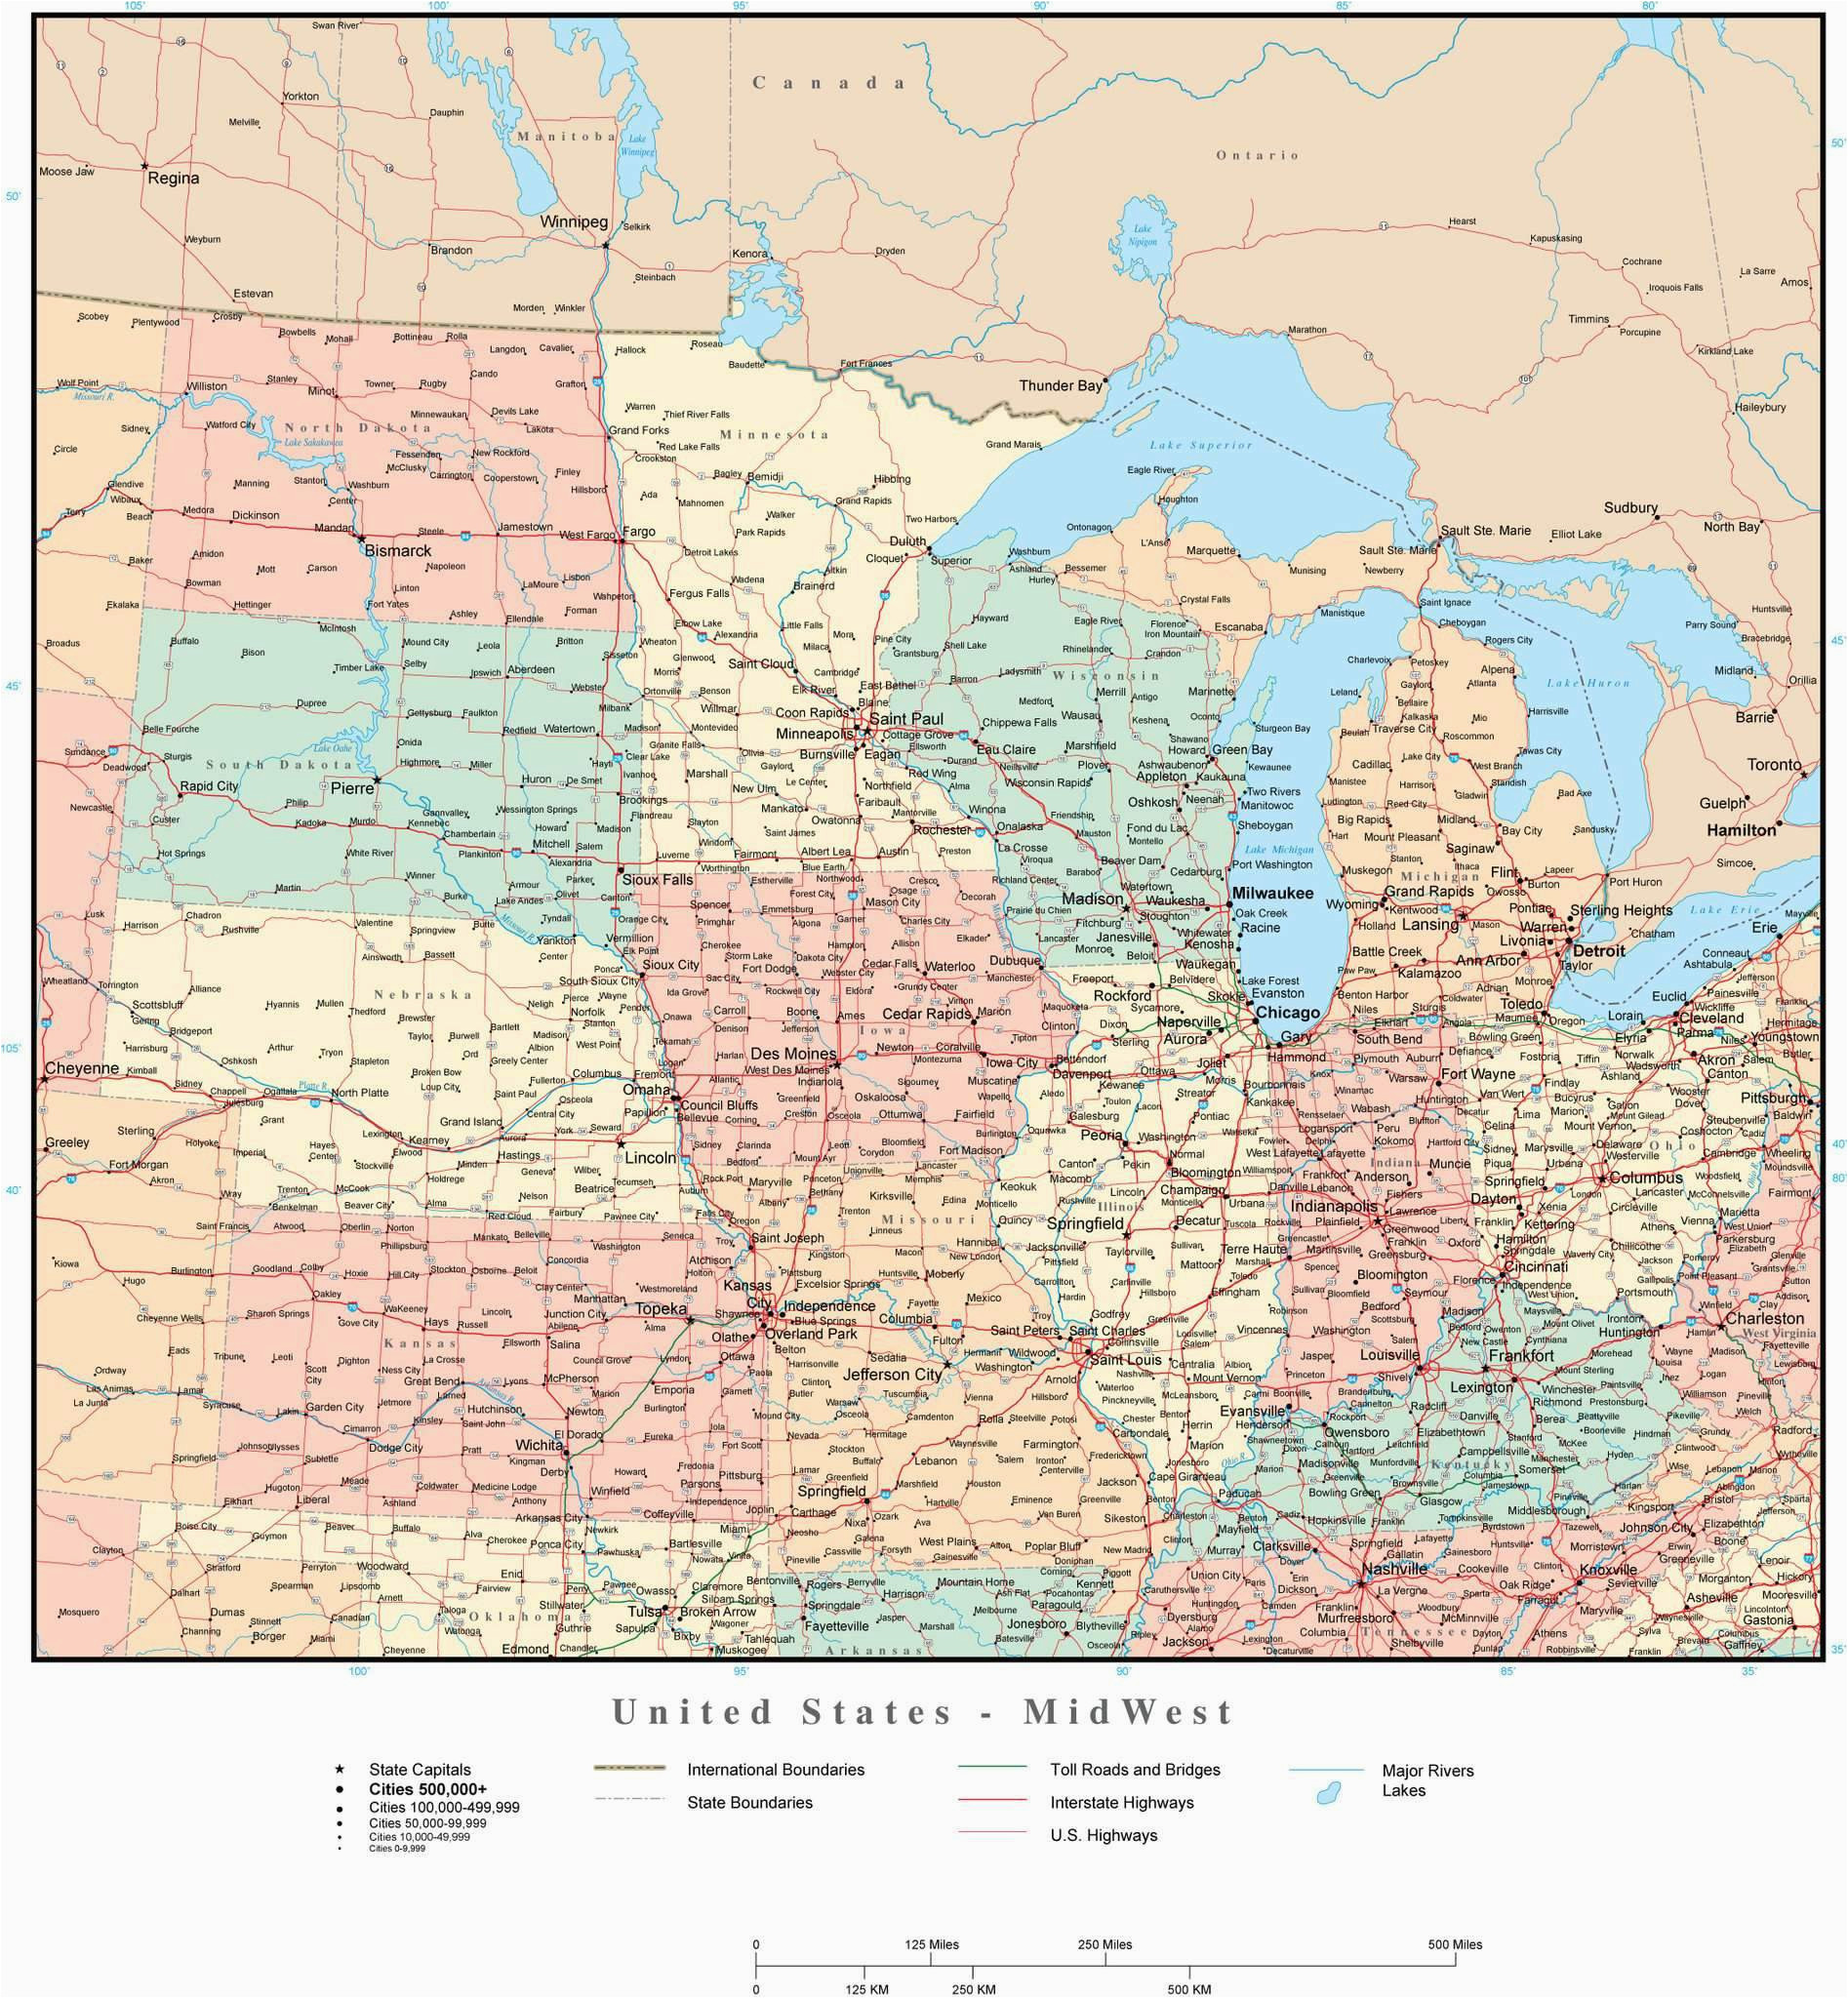 Minnesota County Road Maps Usa Midwest Region Map with ...